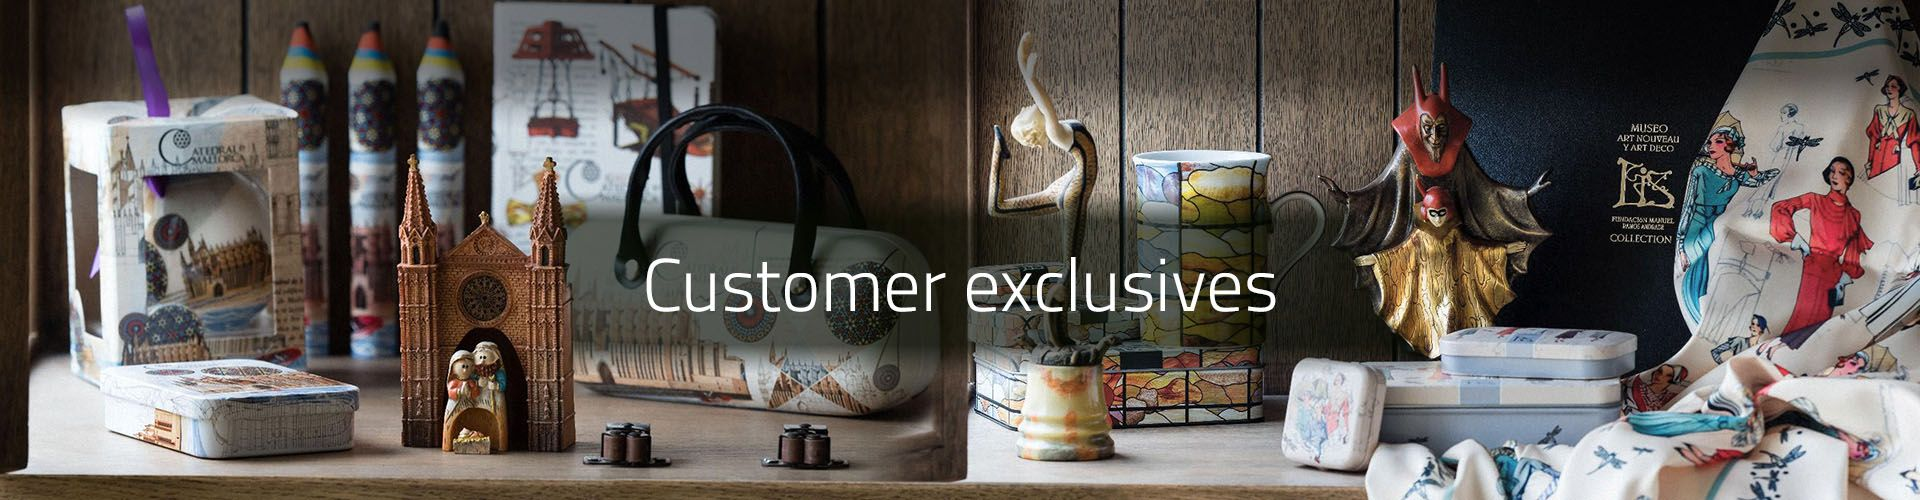 Customer exclusives